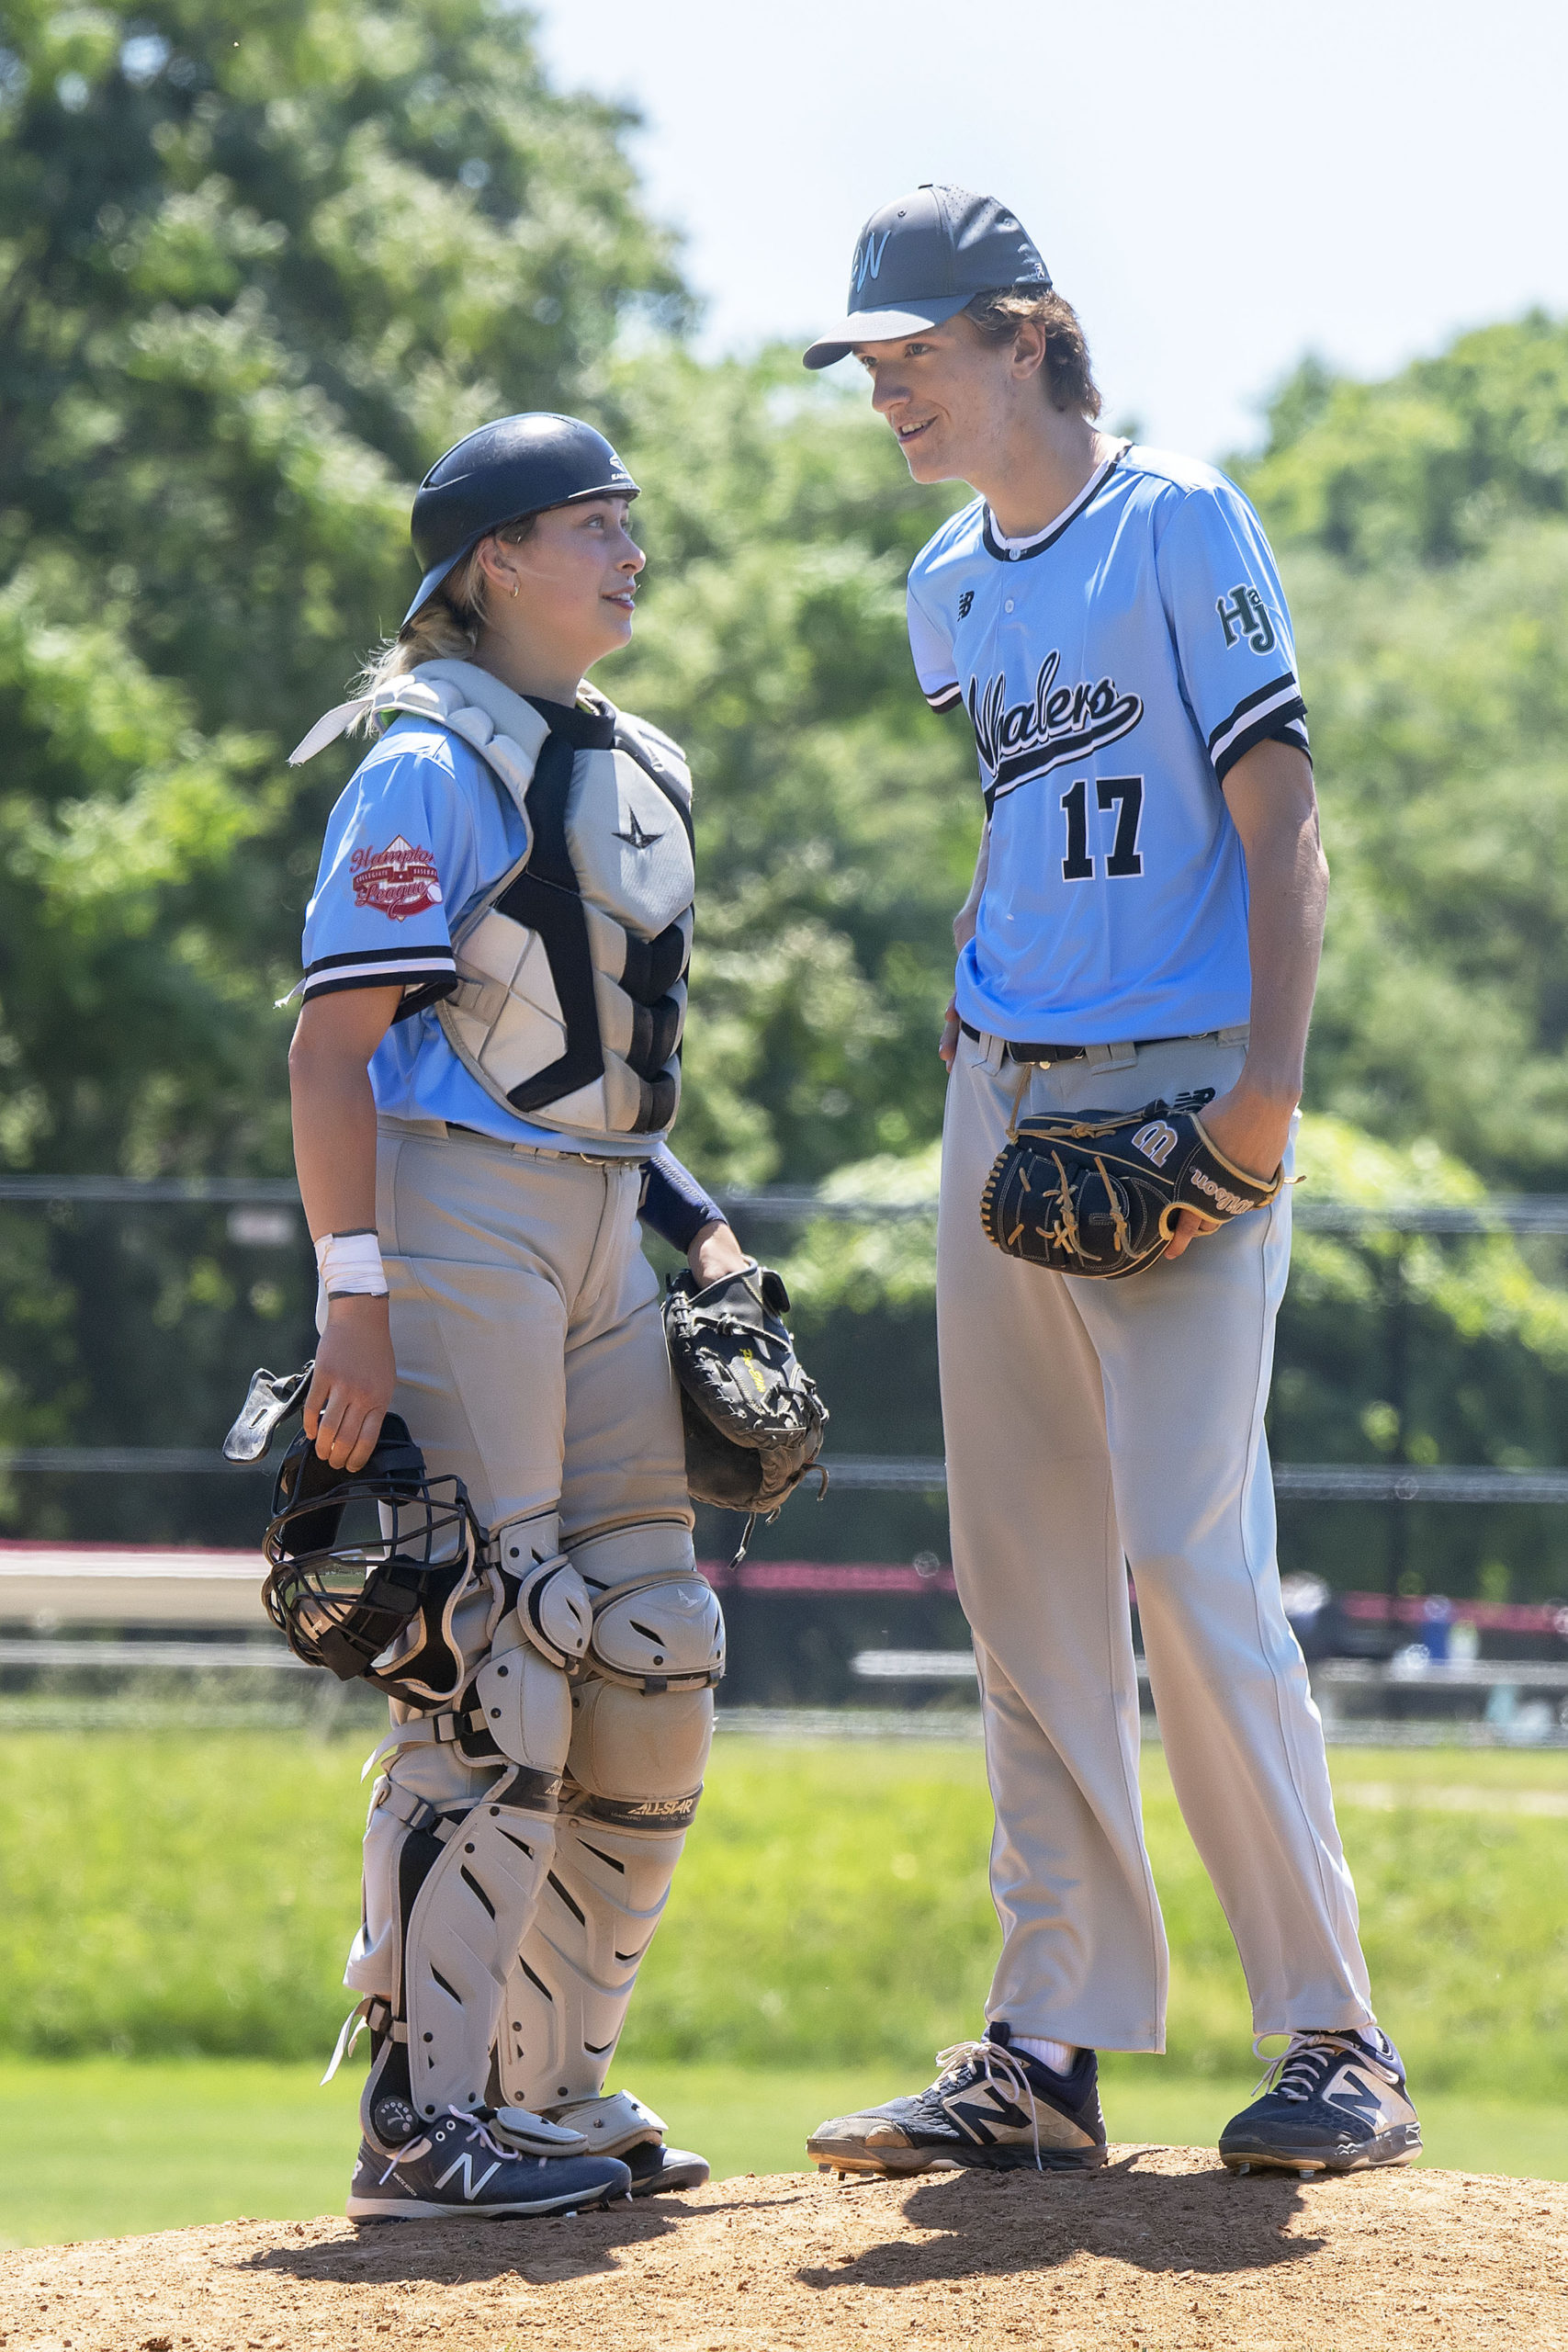 Marika Lyszczyk going over things with her pitcher Carter Delaney.